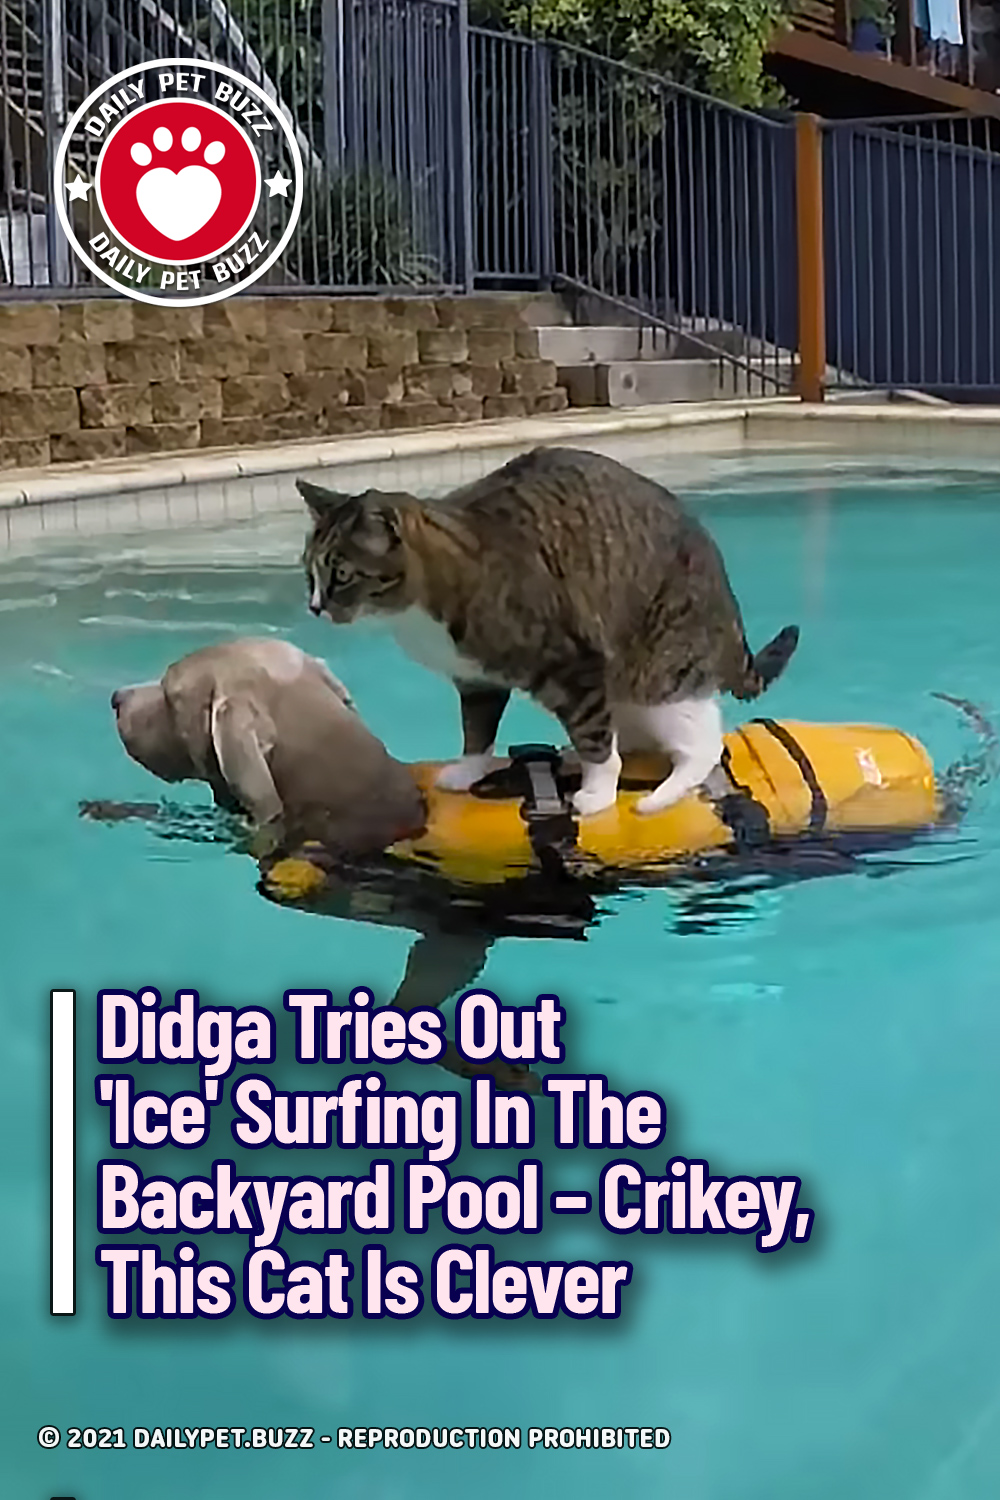 Didga Tries Out \'Ice\' Surfing In The Backyard Pool – Crikey, This Cat Is Clever